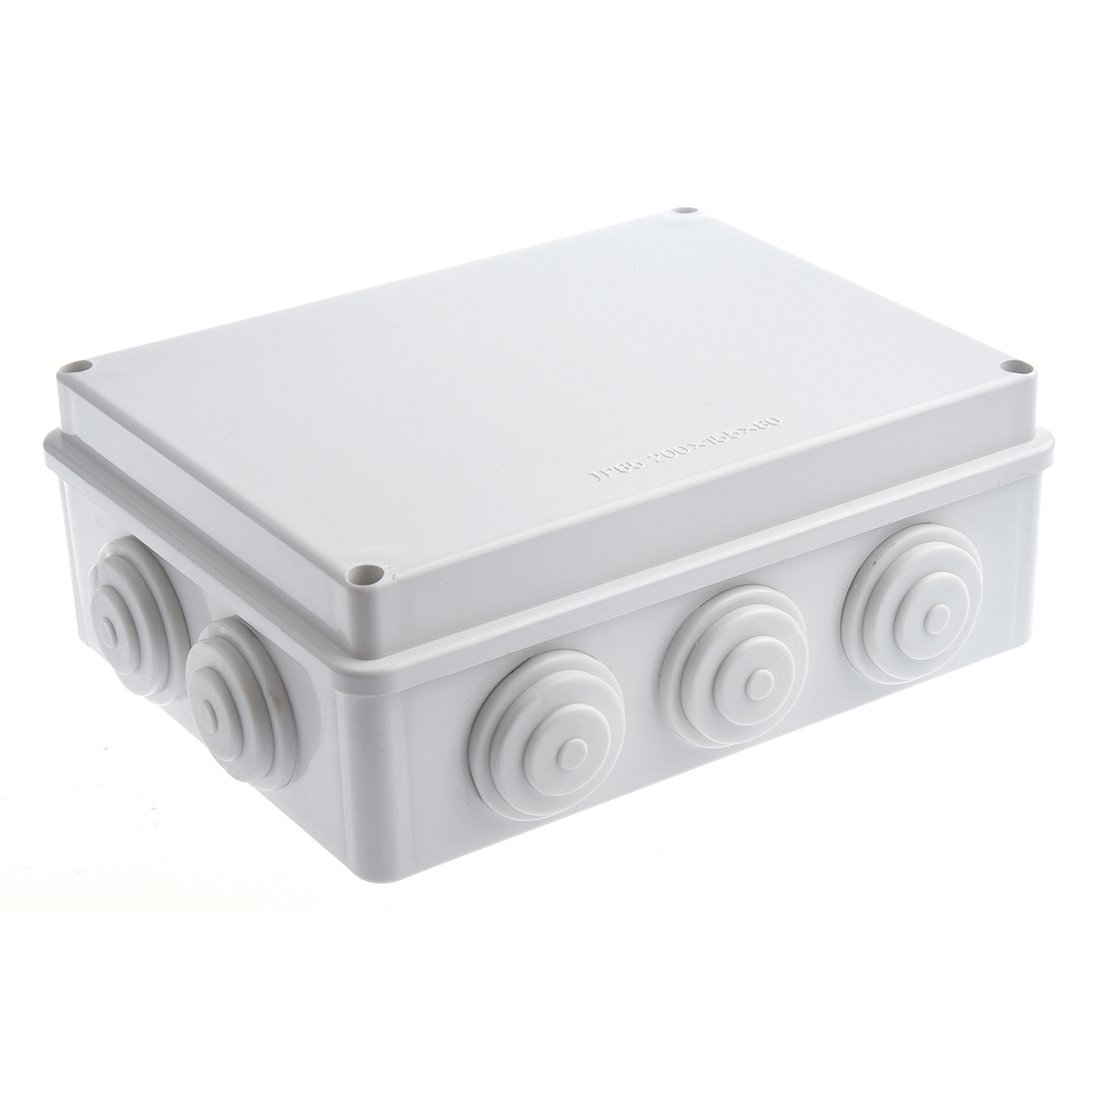 Junction Box - SODIAL(R) White ABS IP65 Waterproof EnClosure Junction Box 200mmx155mmx80mm